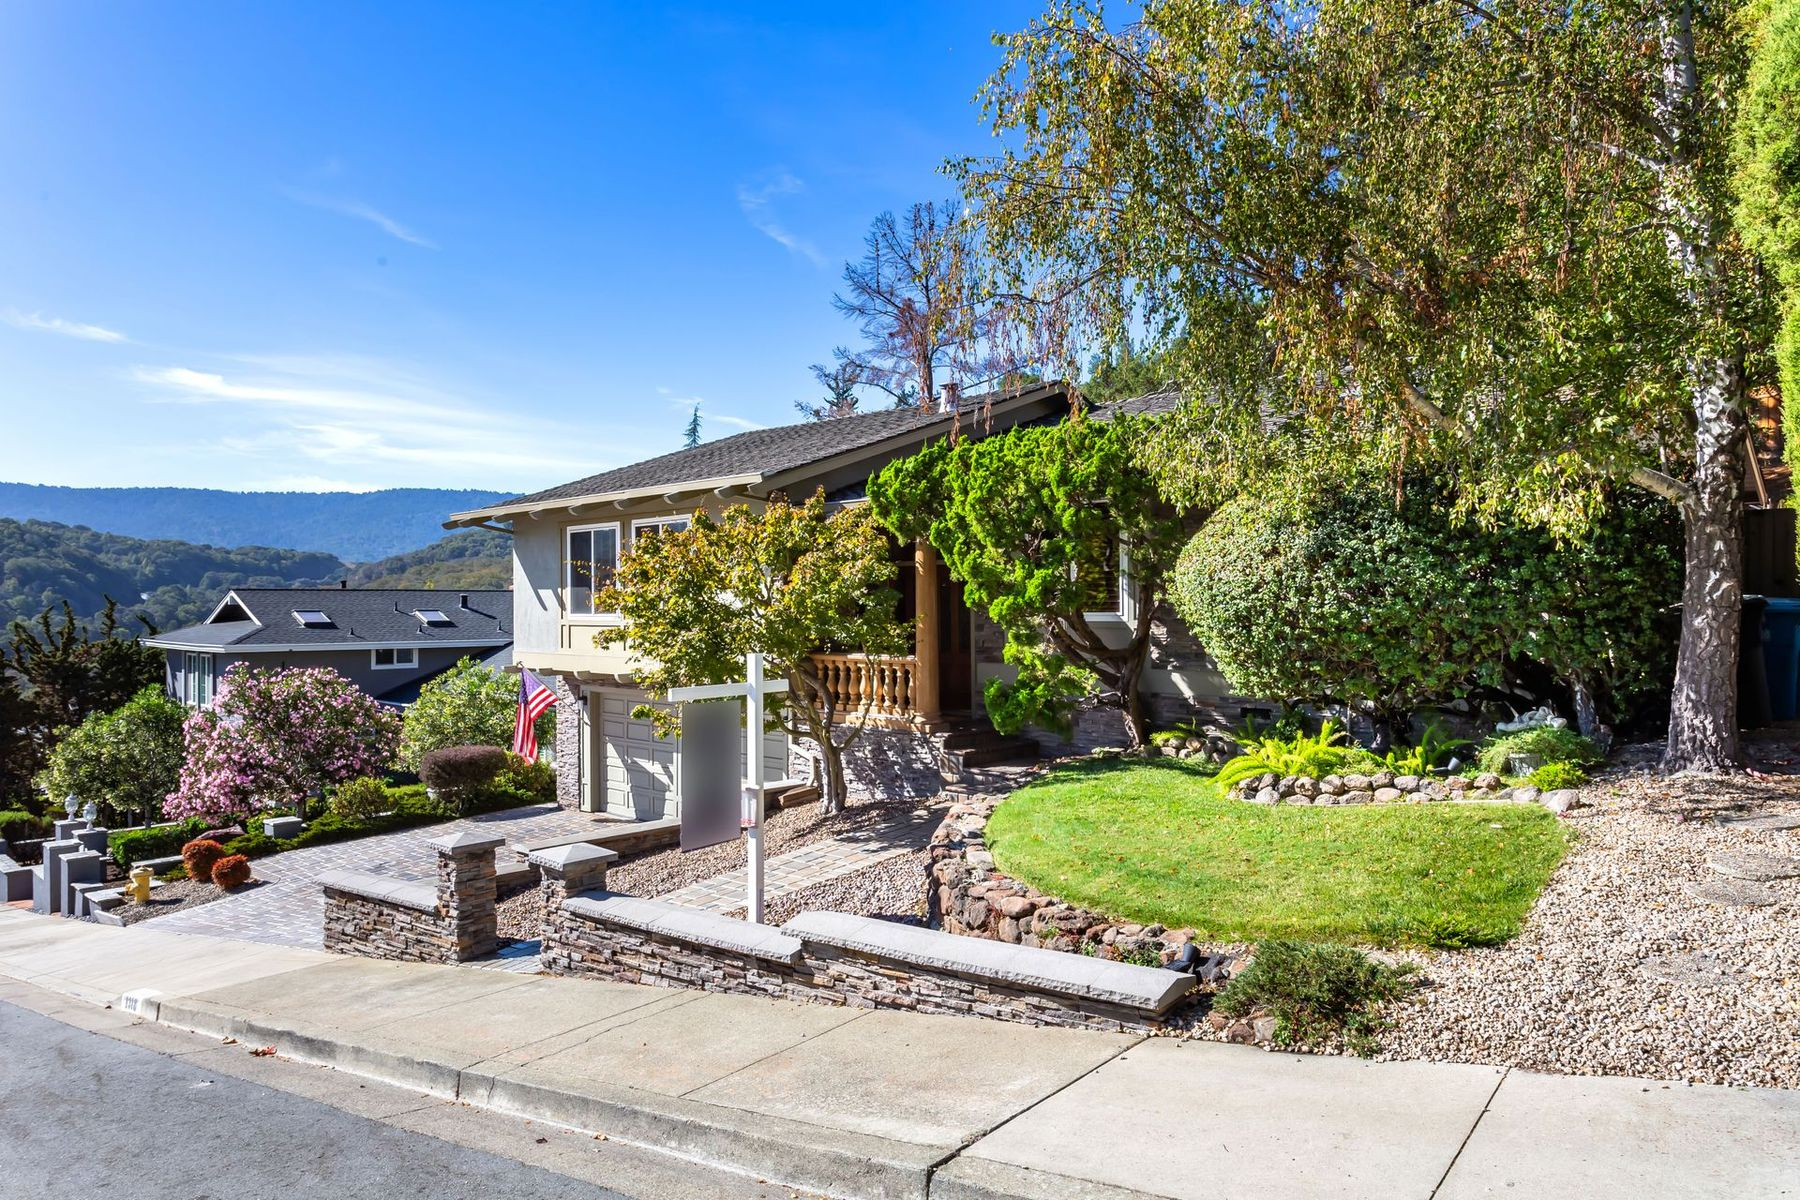 Single Family Home for Active at San Carlos Living With High End Upgrades 1318 Crestview Dr San Carlos, California 94070 United States